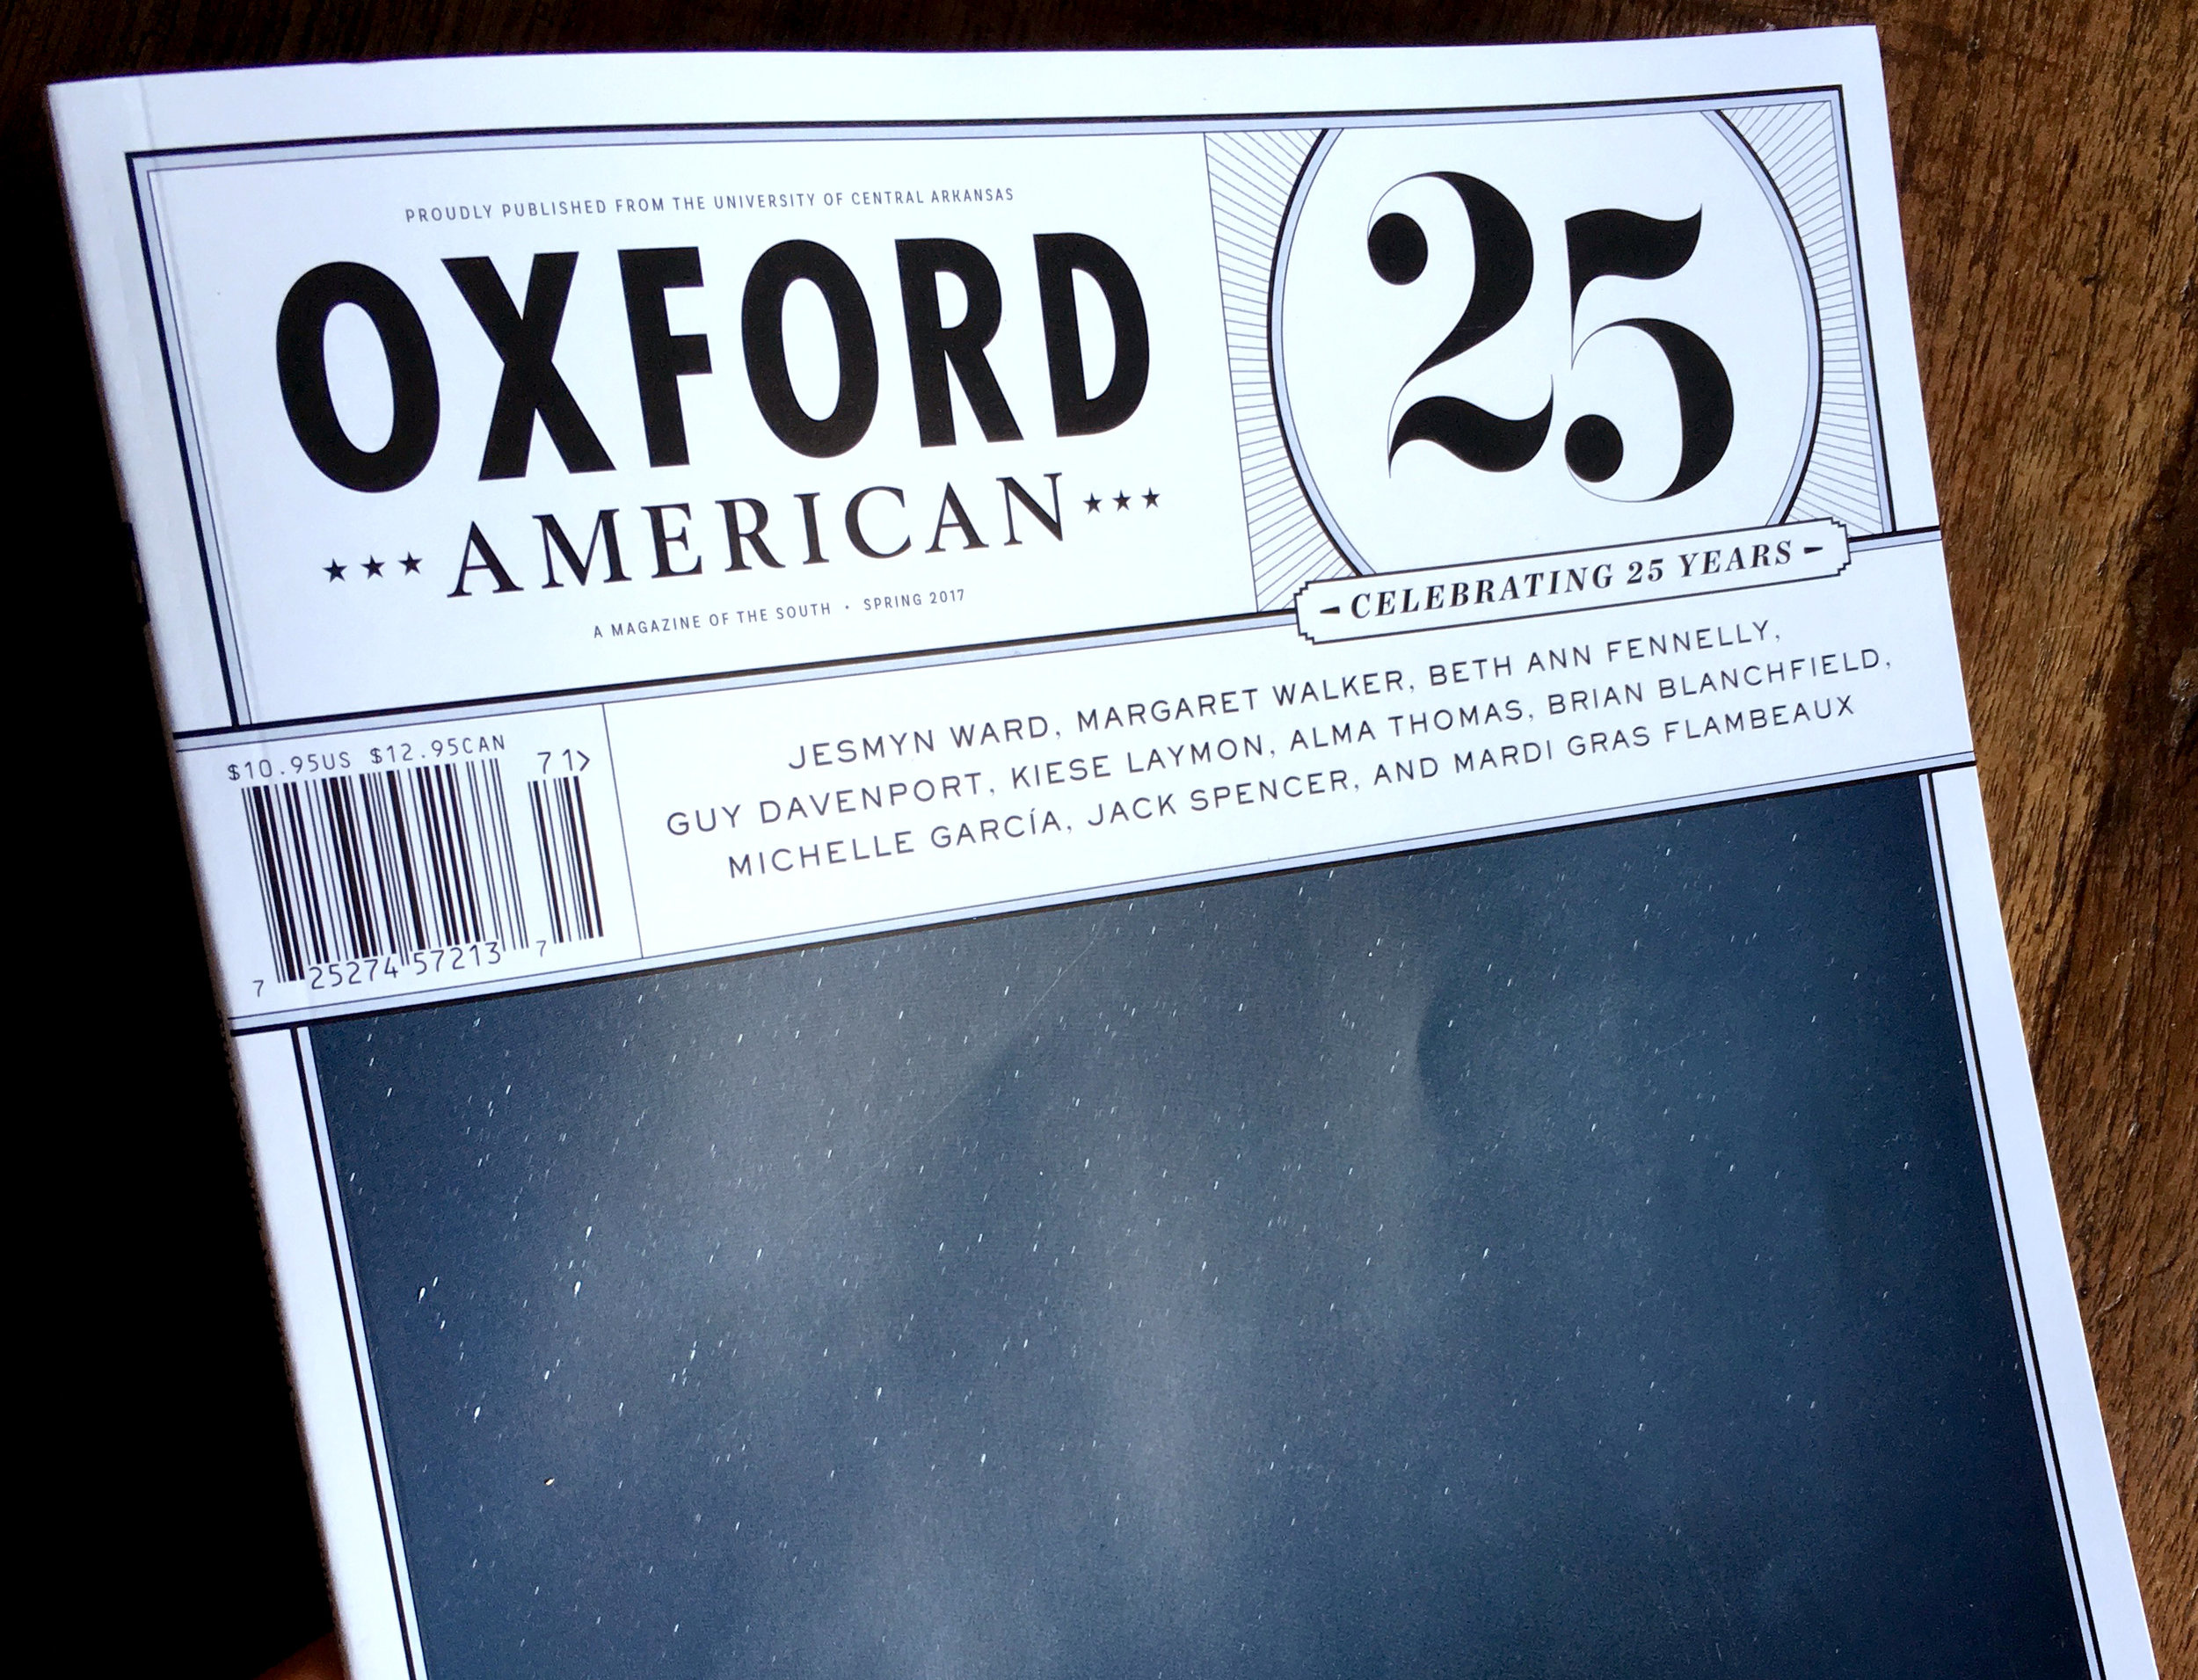 oxford american cropped.jpg